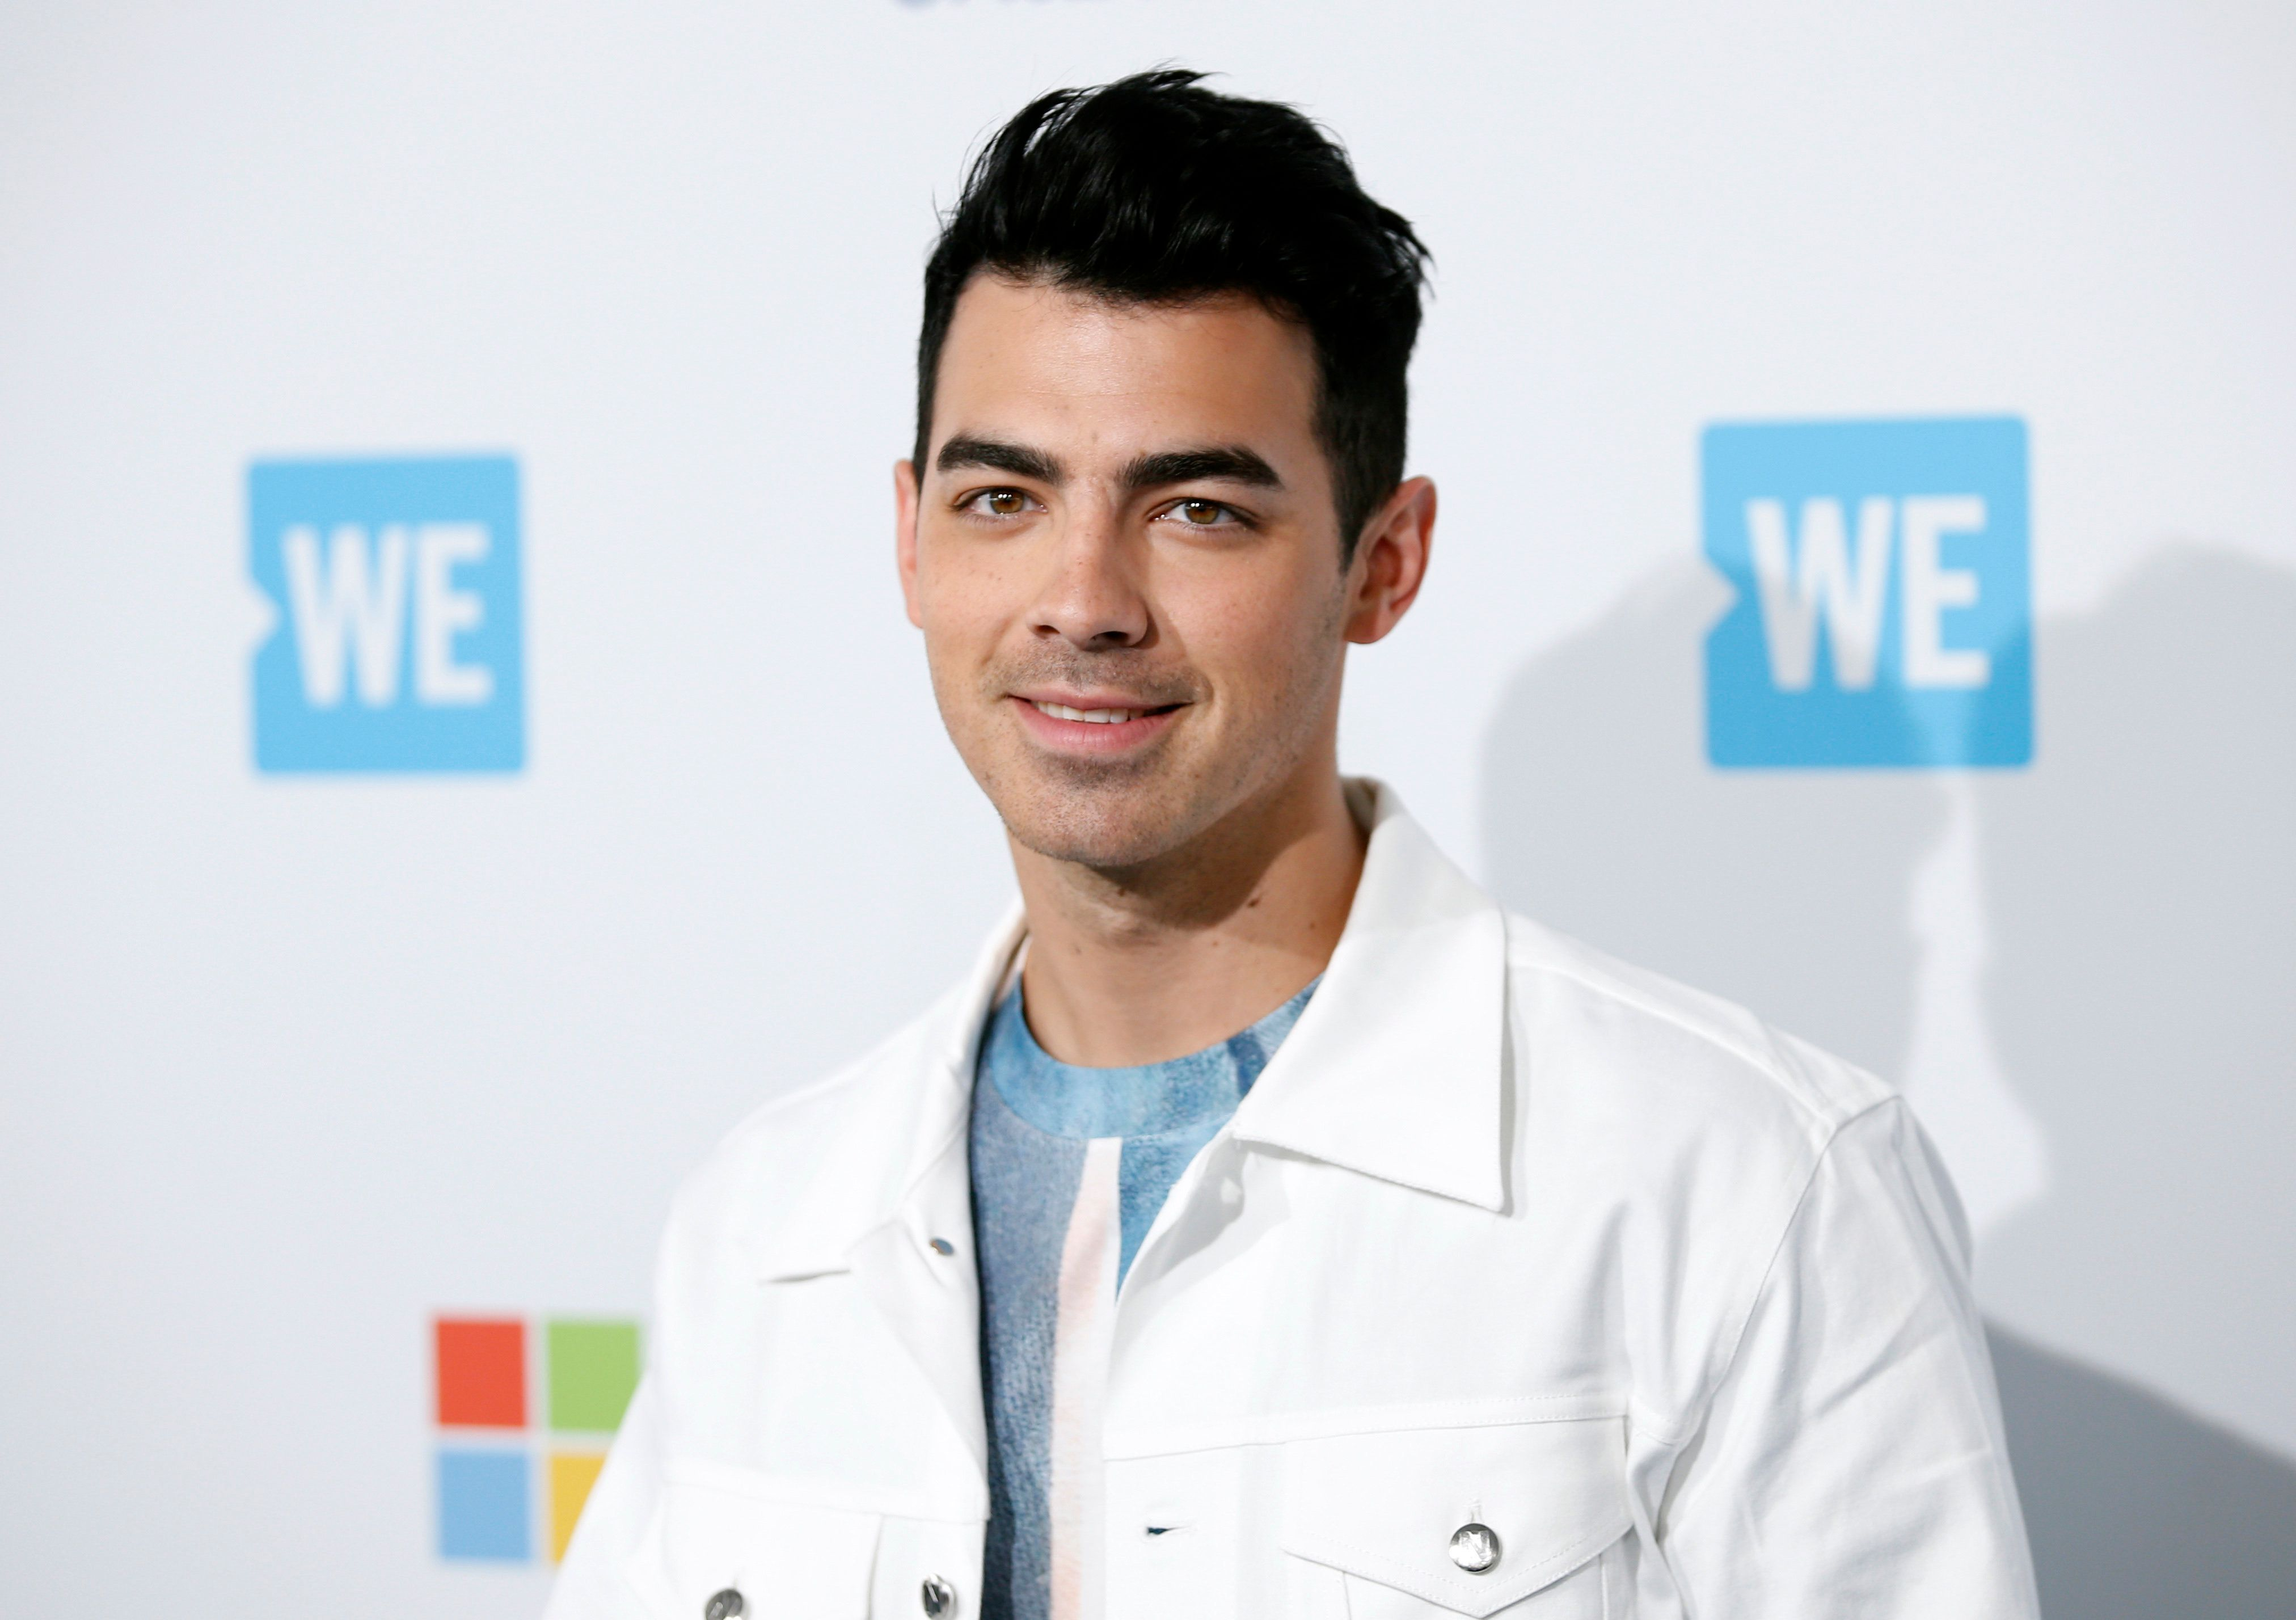 Singer Joe Jonas poses at We Day California in Inglewood, California, April 7, 2016. REUTERS/Danny Moloshok